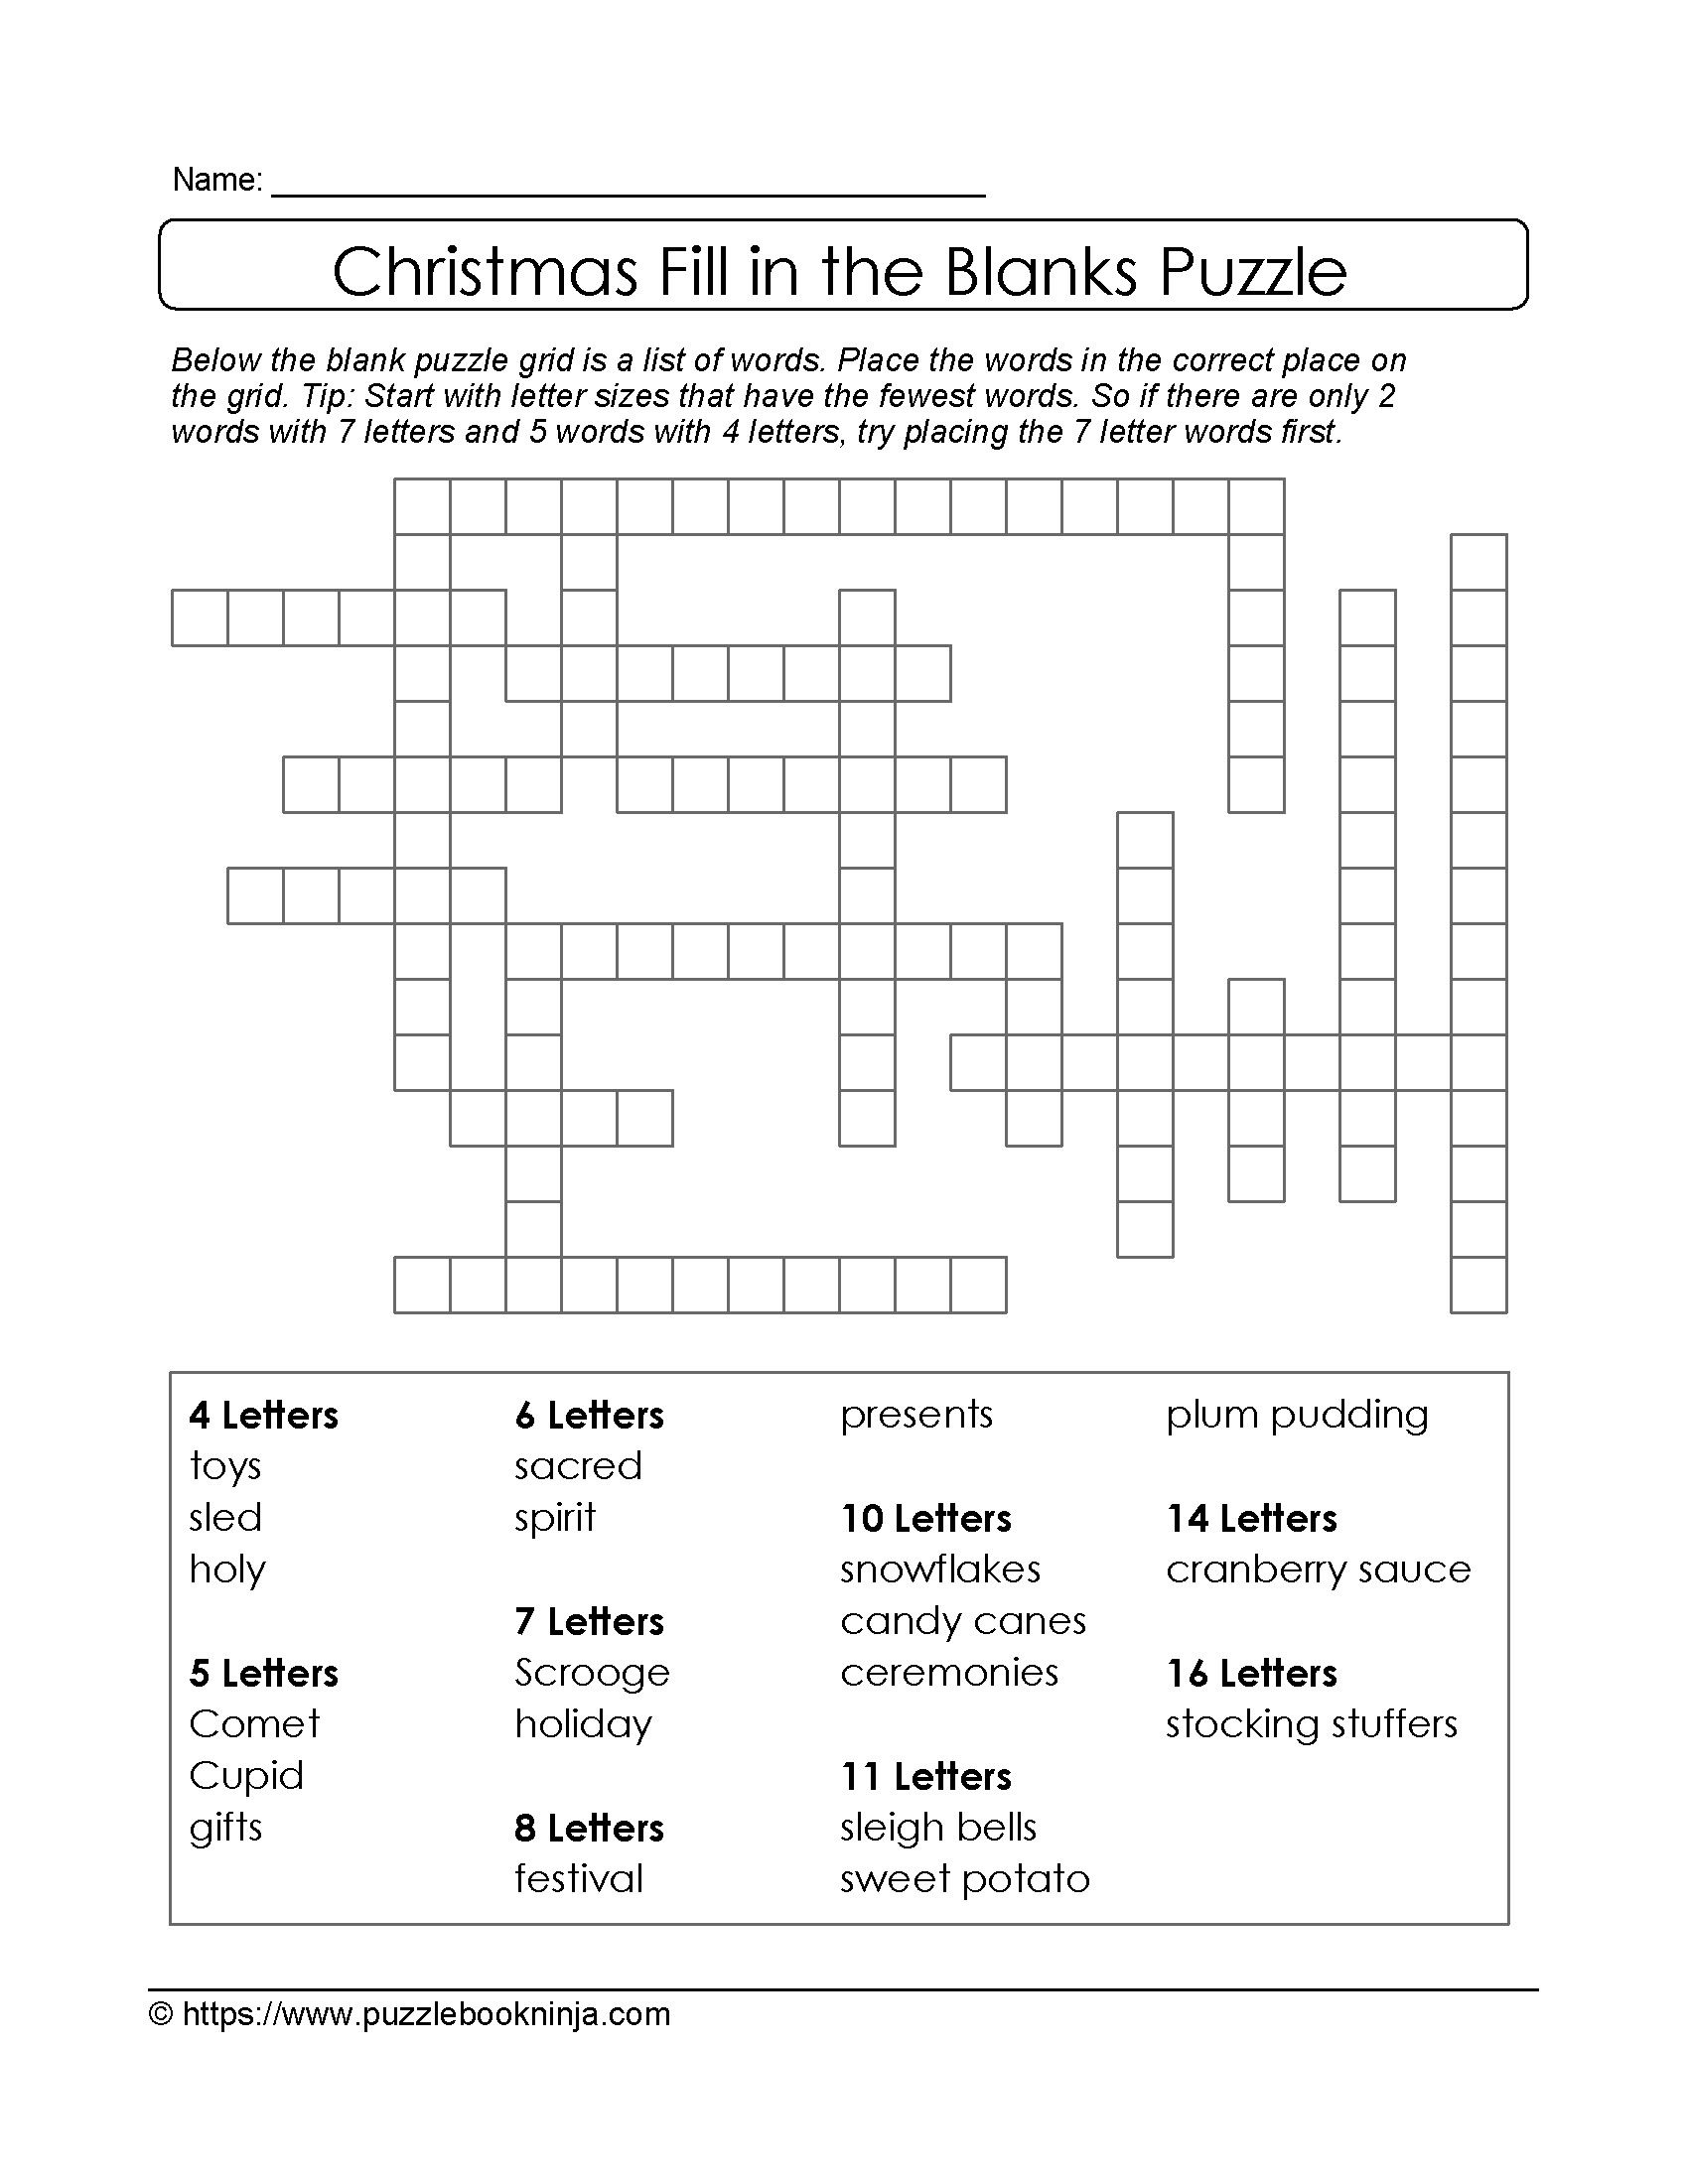 Puzzles To Print. Free Xmas Theme Fill In The Blanks Puzzle - Printable Puzzle Christmas